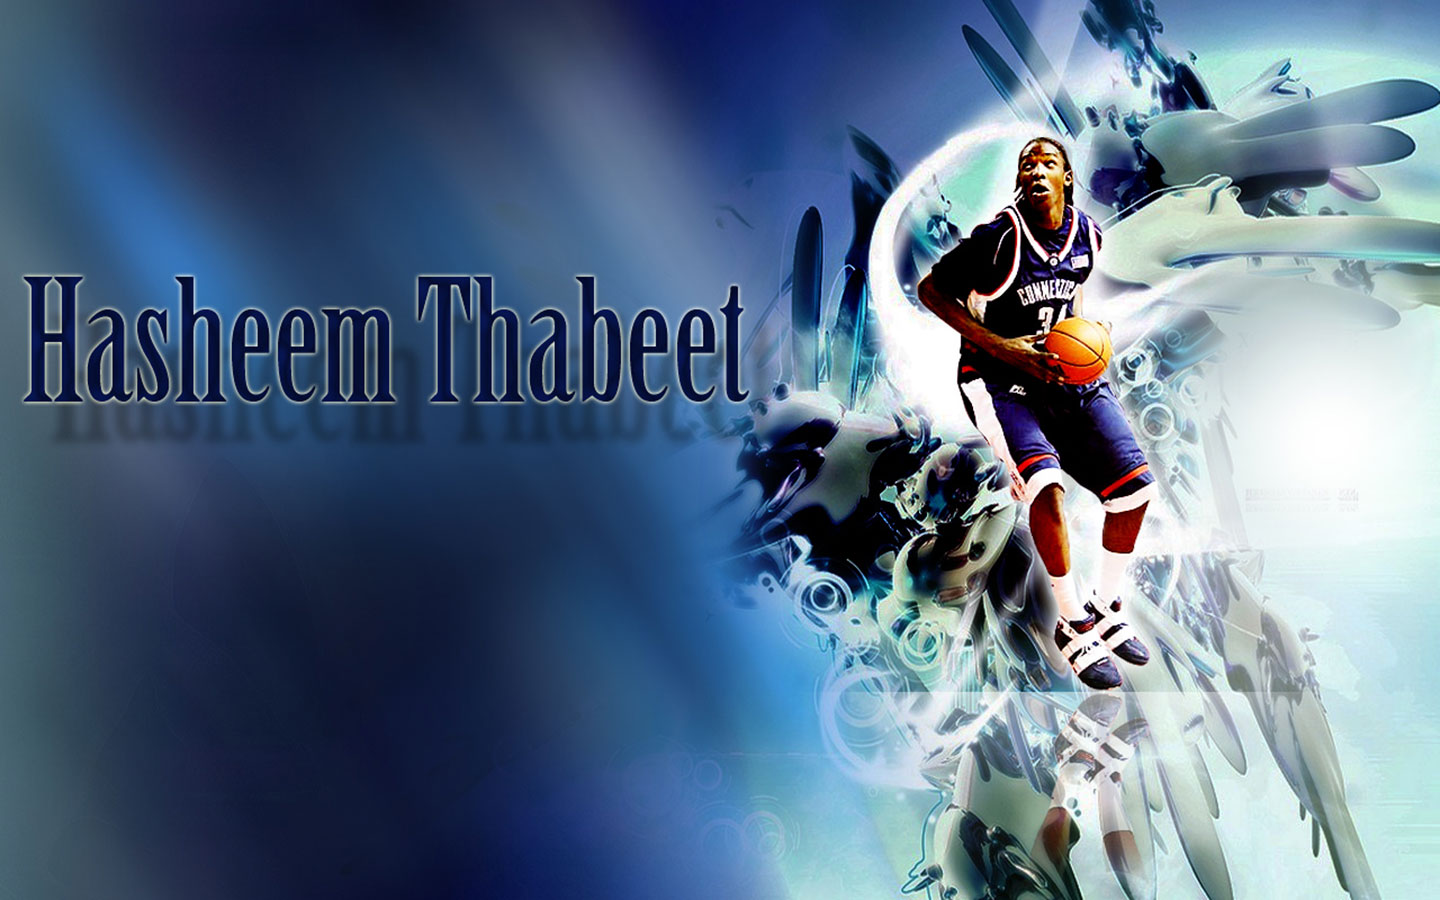 Uconn Iphone Wallpaper Hasheem Thabeet Widescreen Wallpaper Basketball